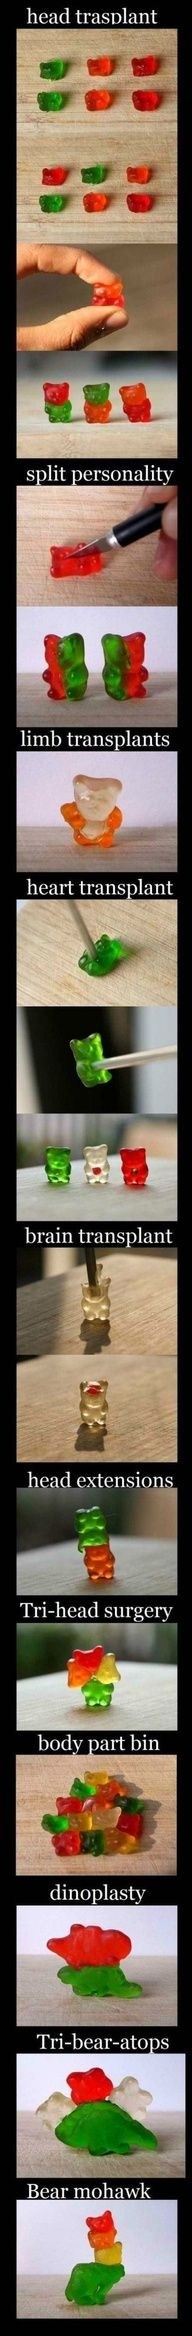 Gummy bear experiments...